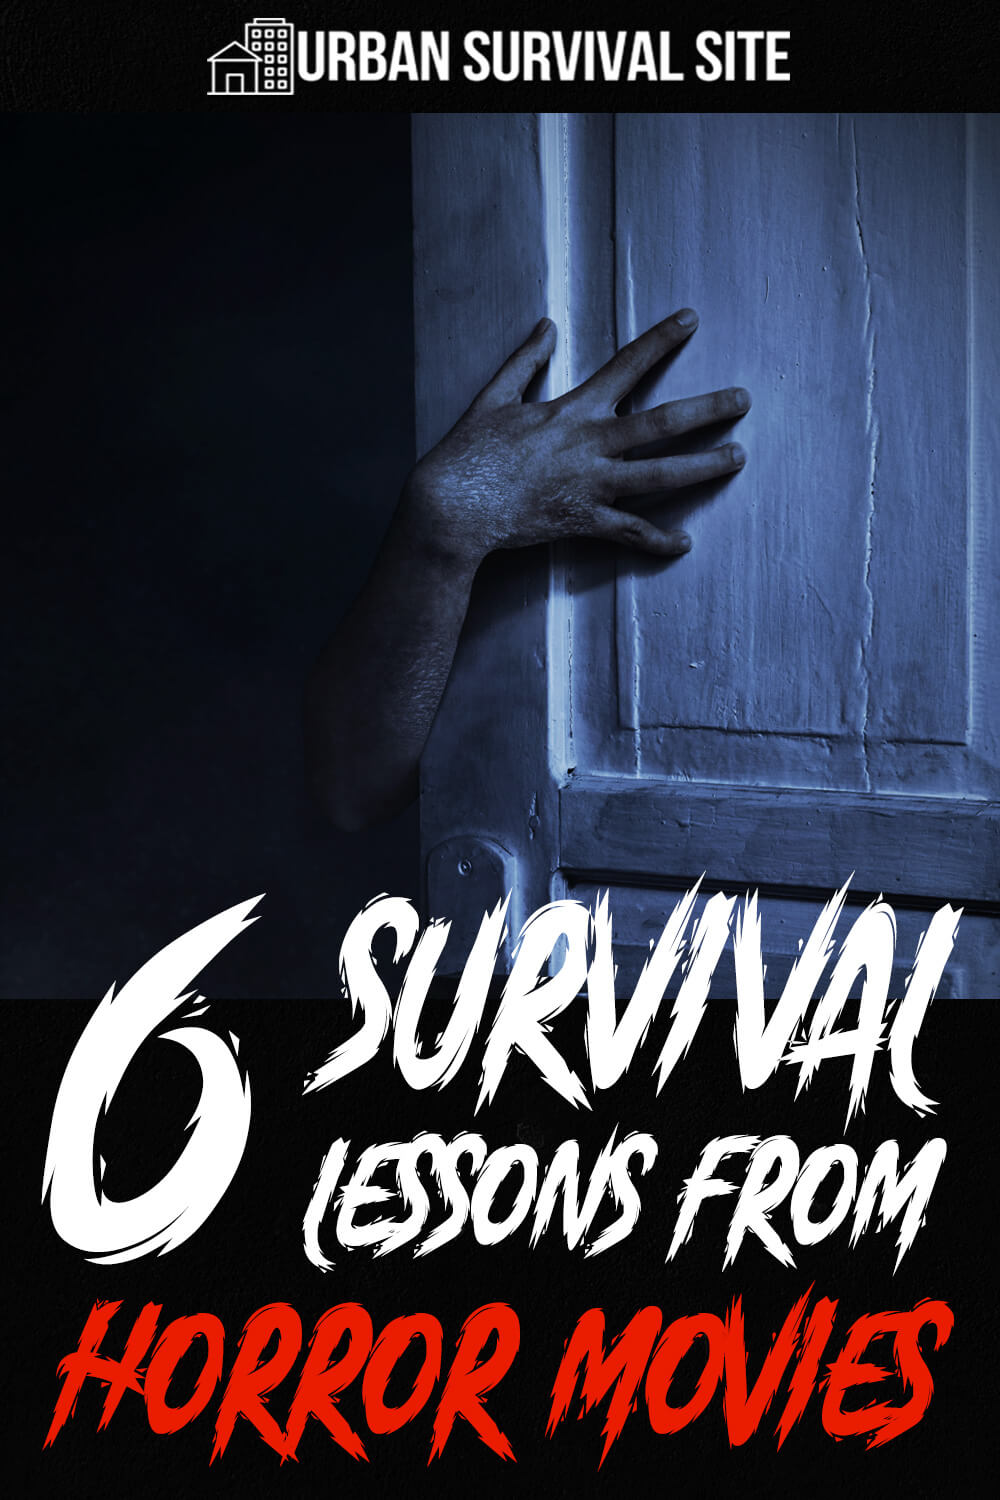 6 Survival Lessons From Horror Movies